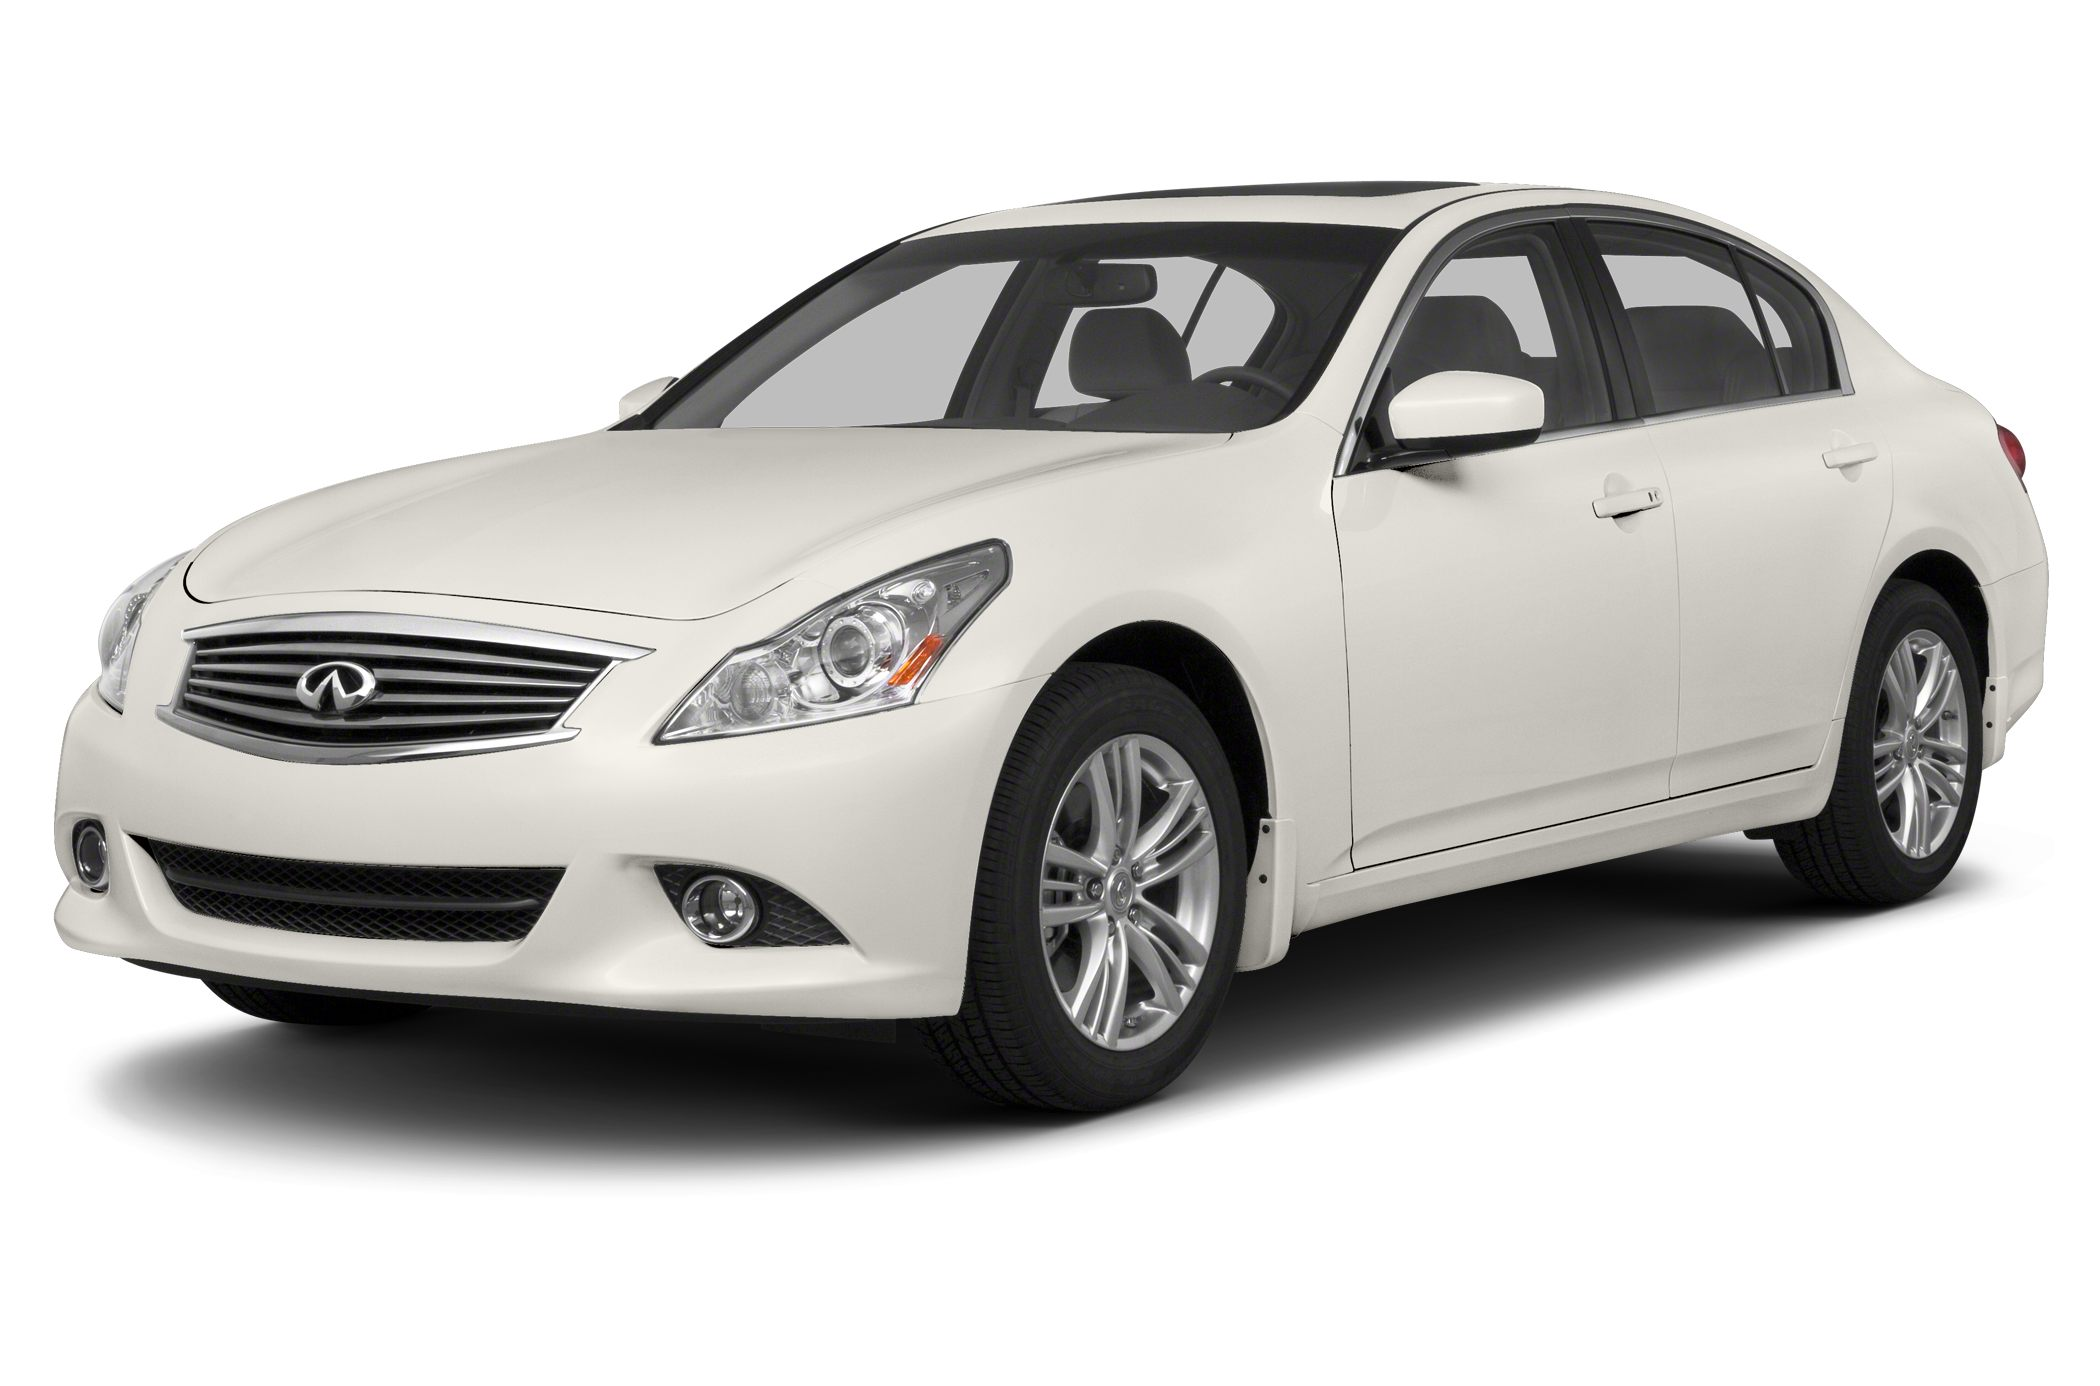 2013 Infiniti G37 Sport 4dr Rear Wheel Drive Sedan Specs And Prices